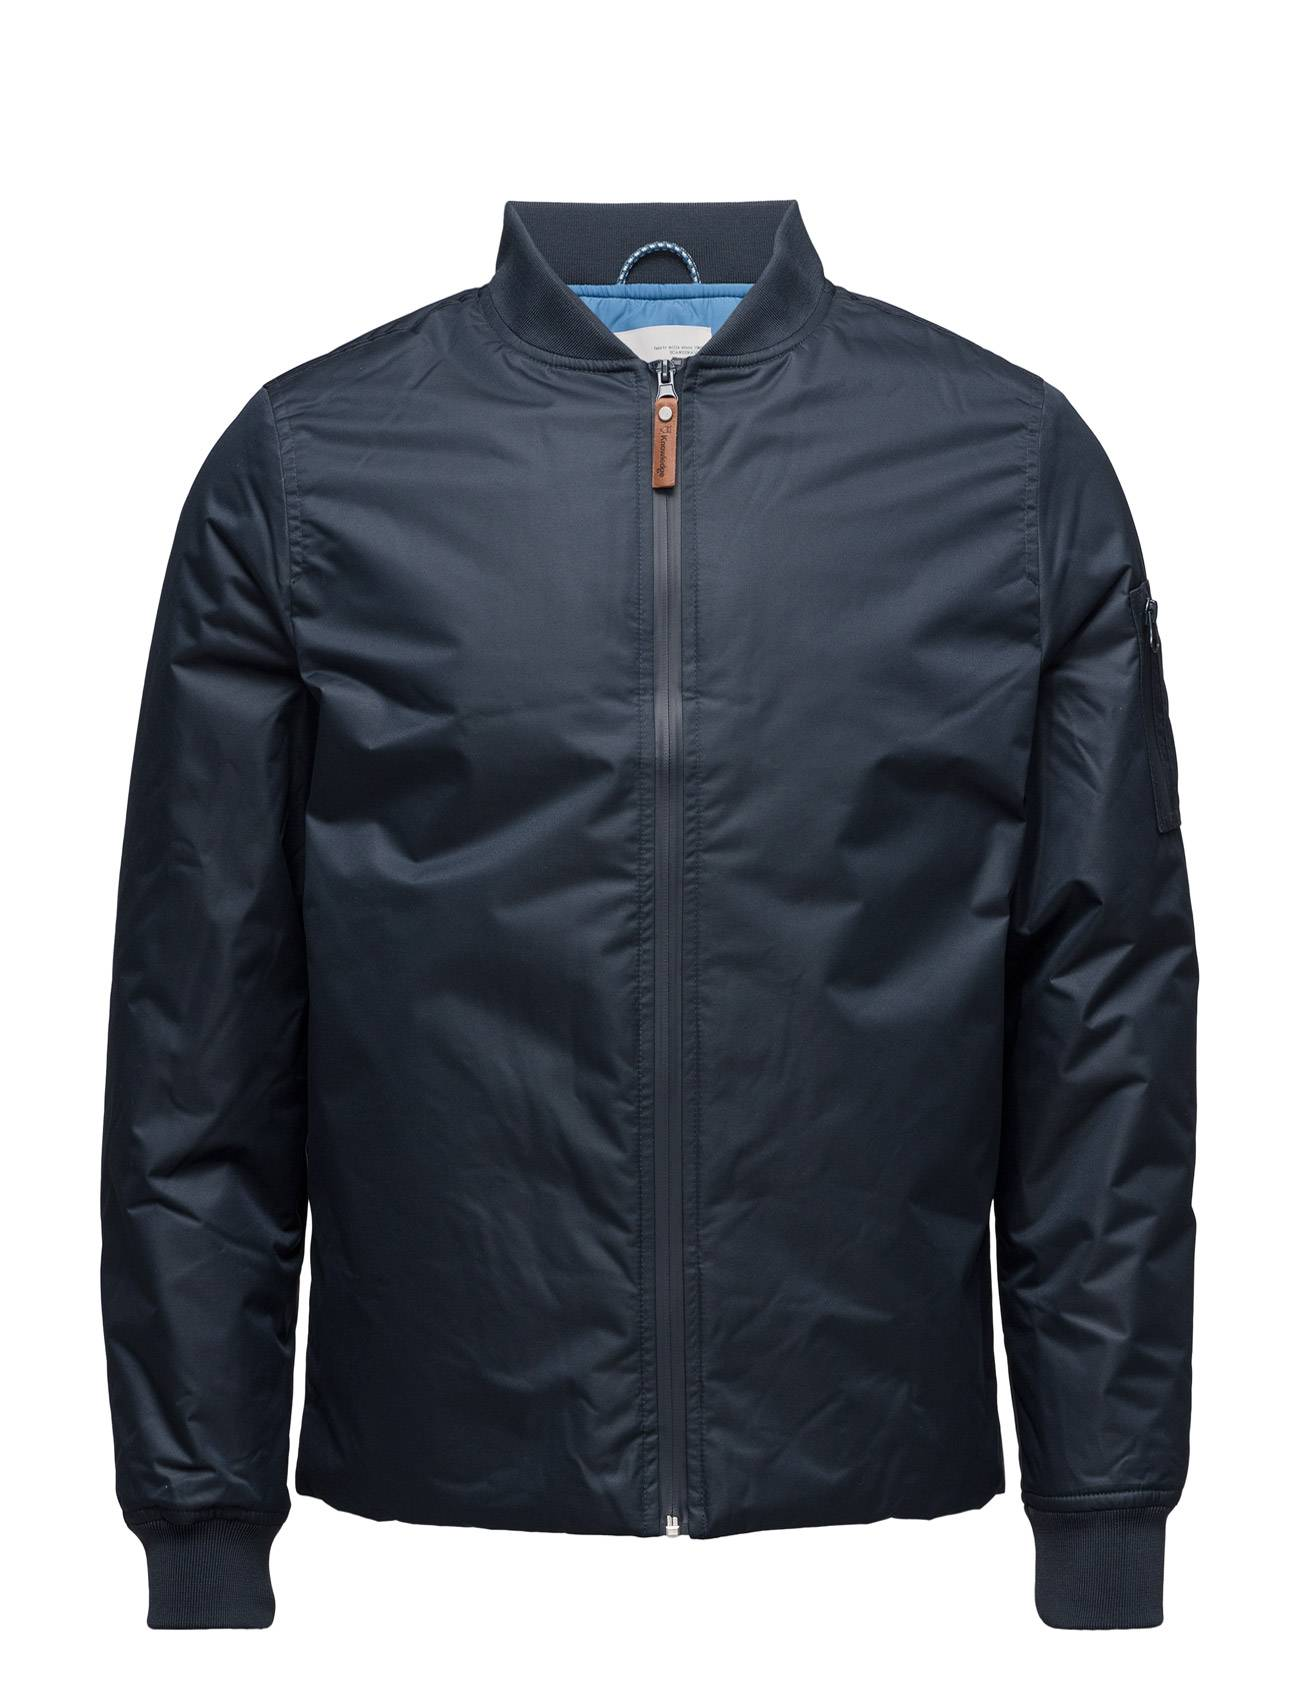 Knowledge Cotton Apparel Functional Short Jacket